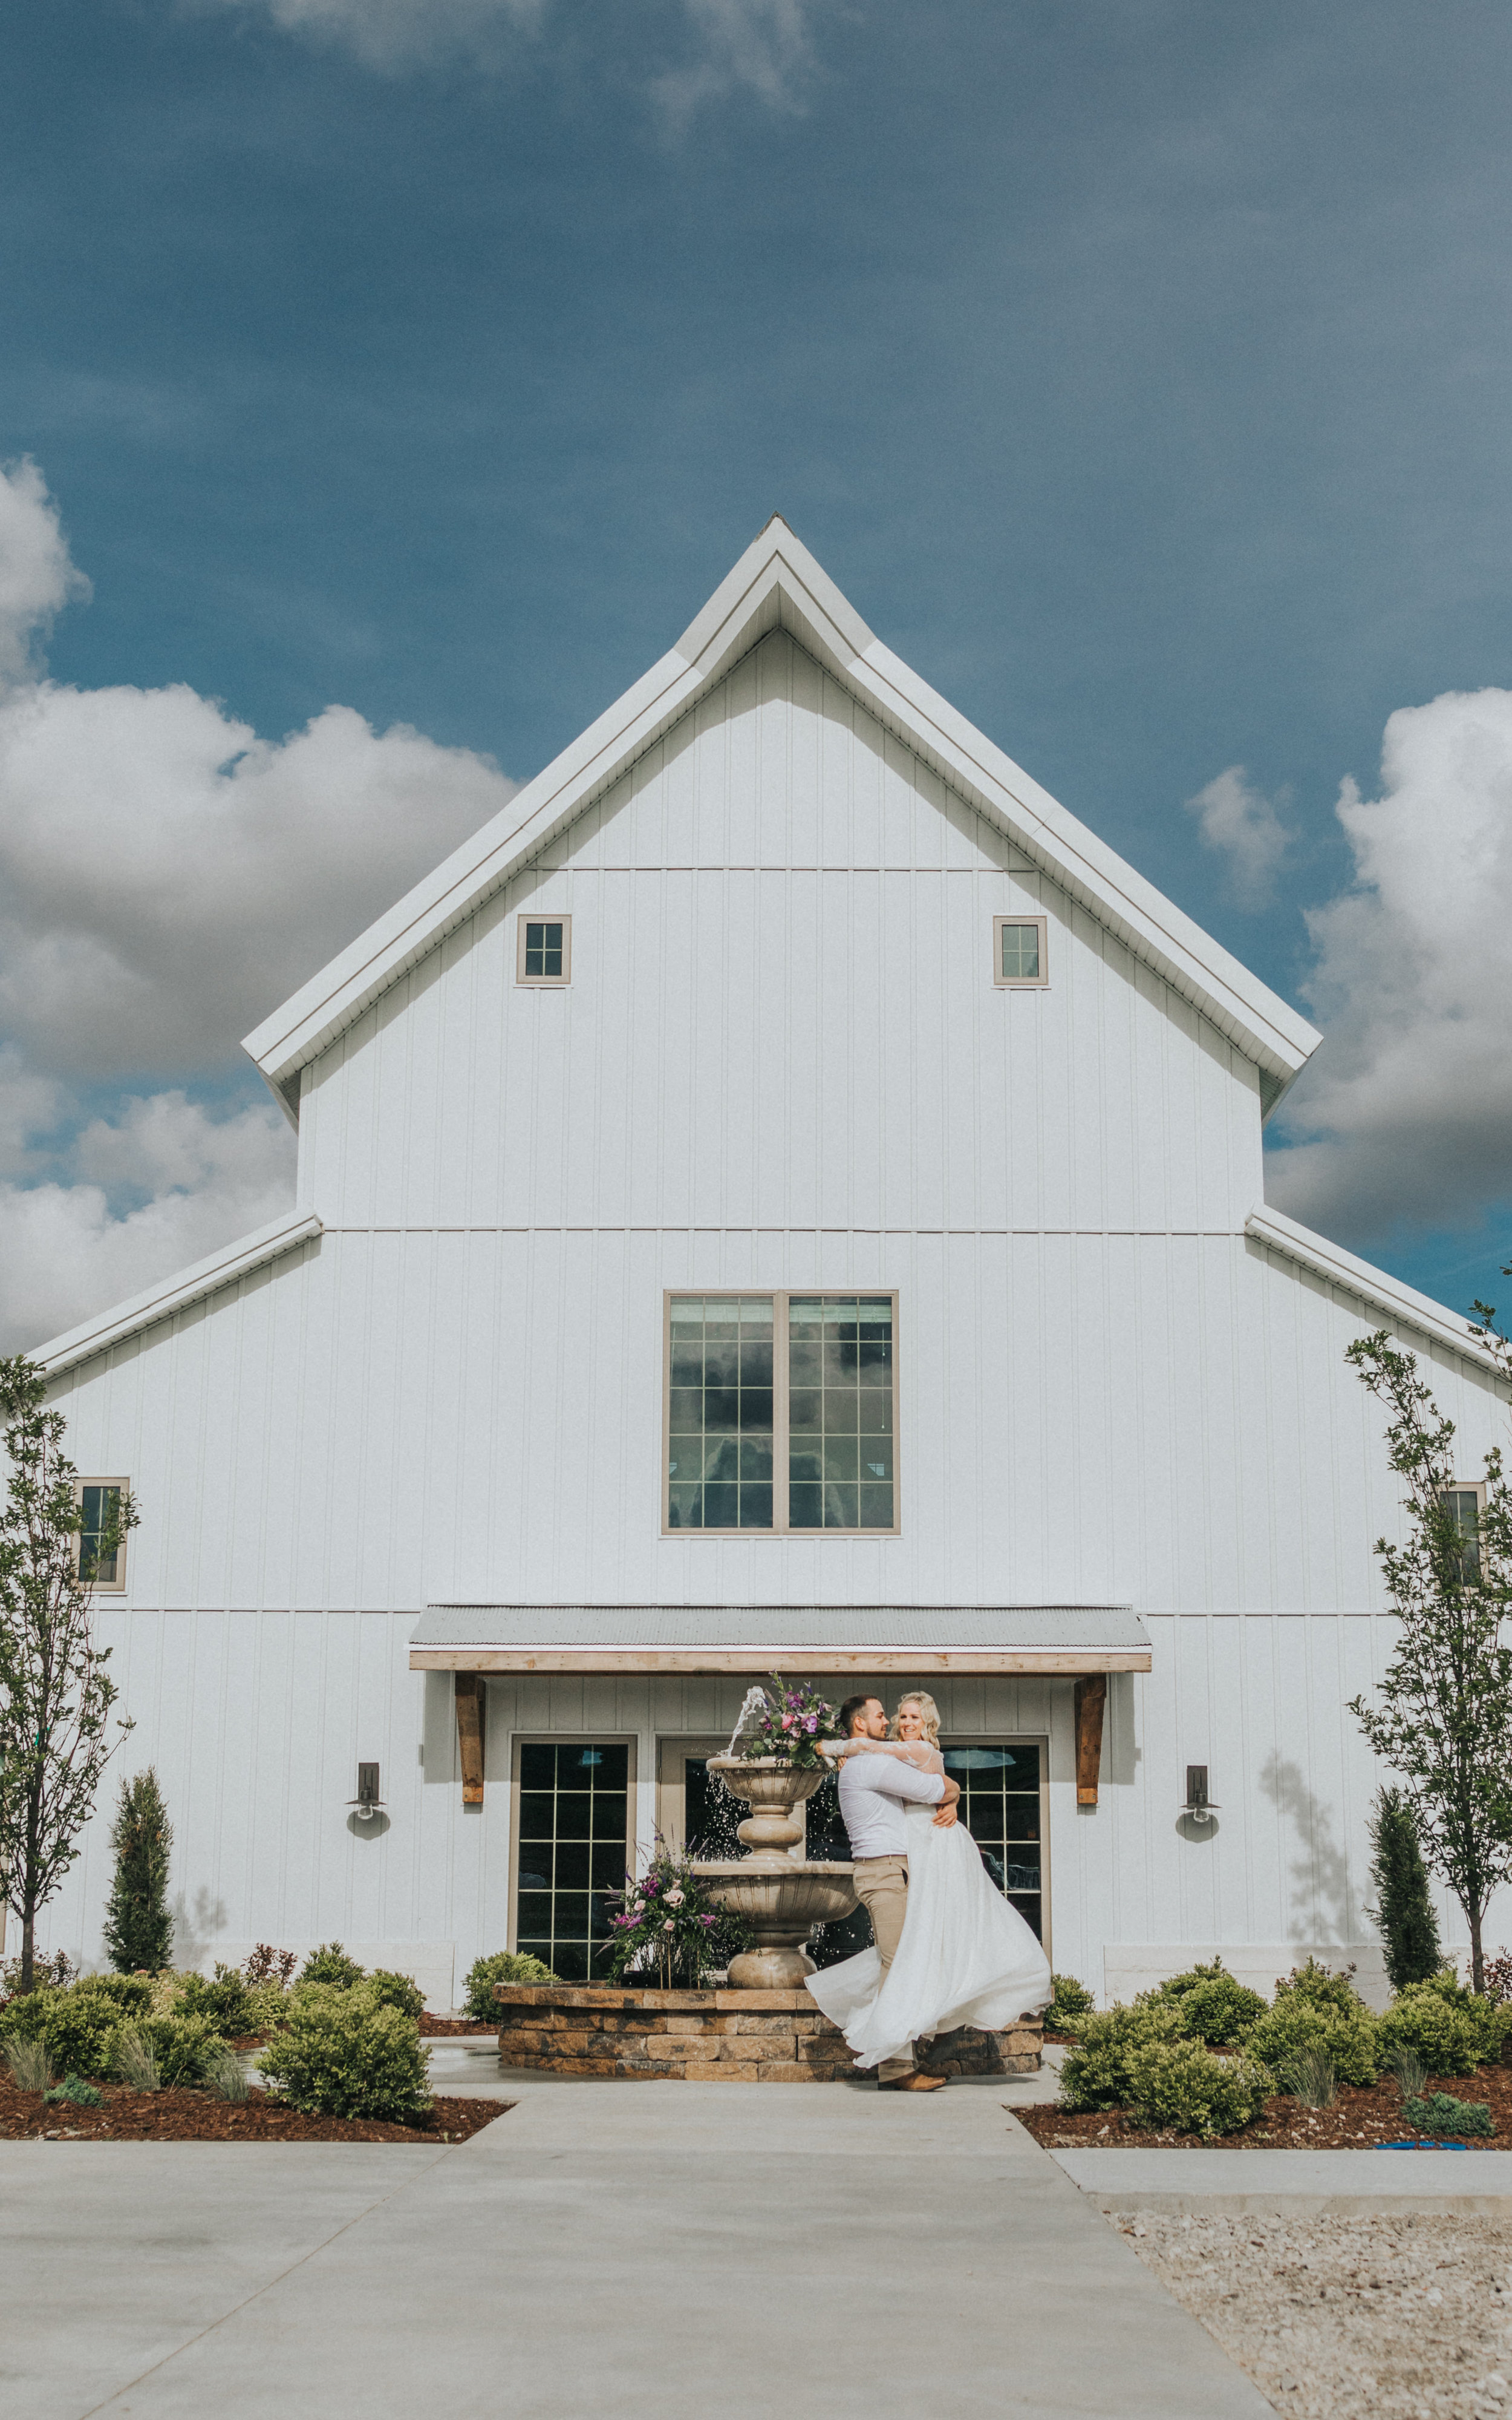 229 tiny-luxe-weddings-iowa-venue-photogeraphy-palace.jpg